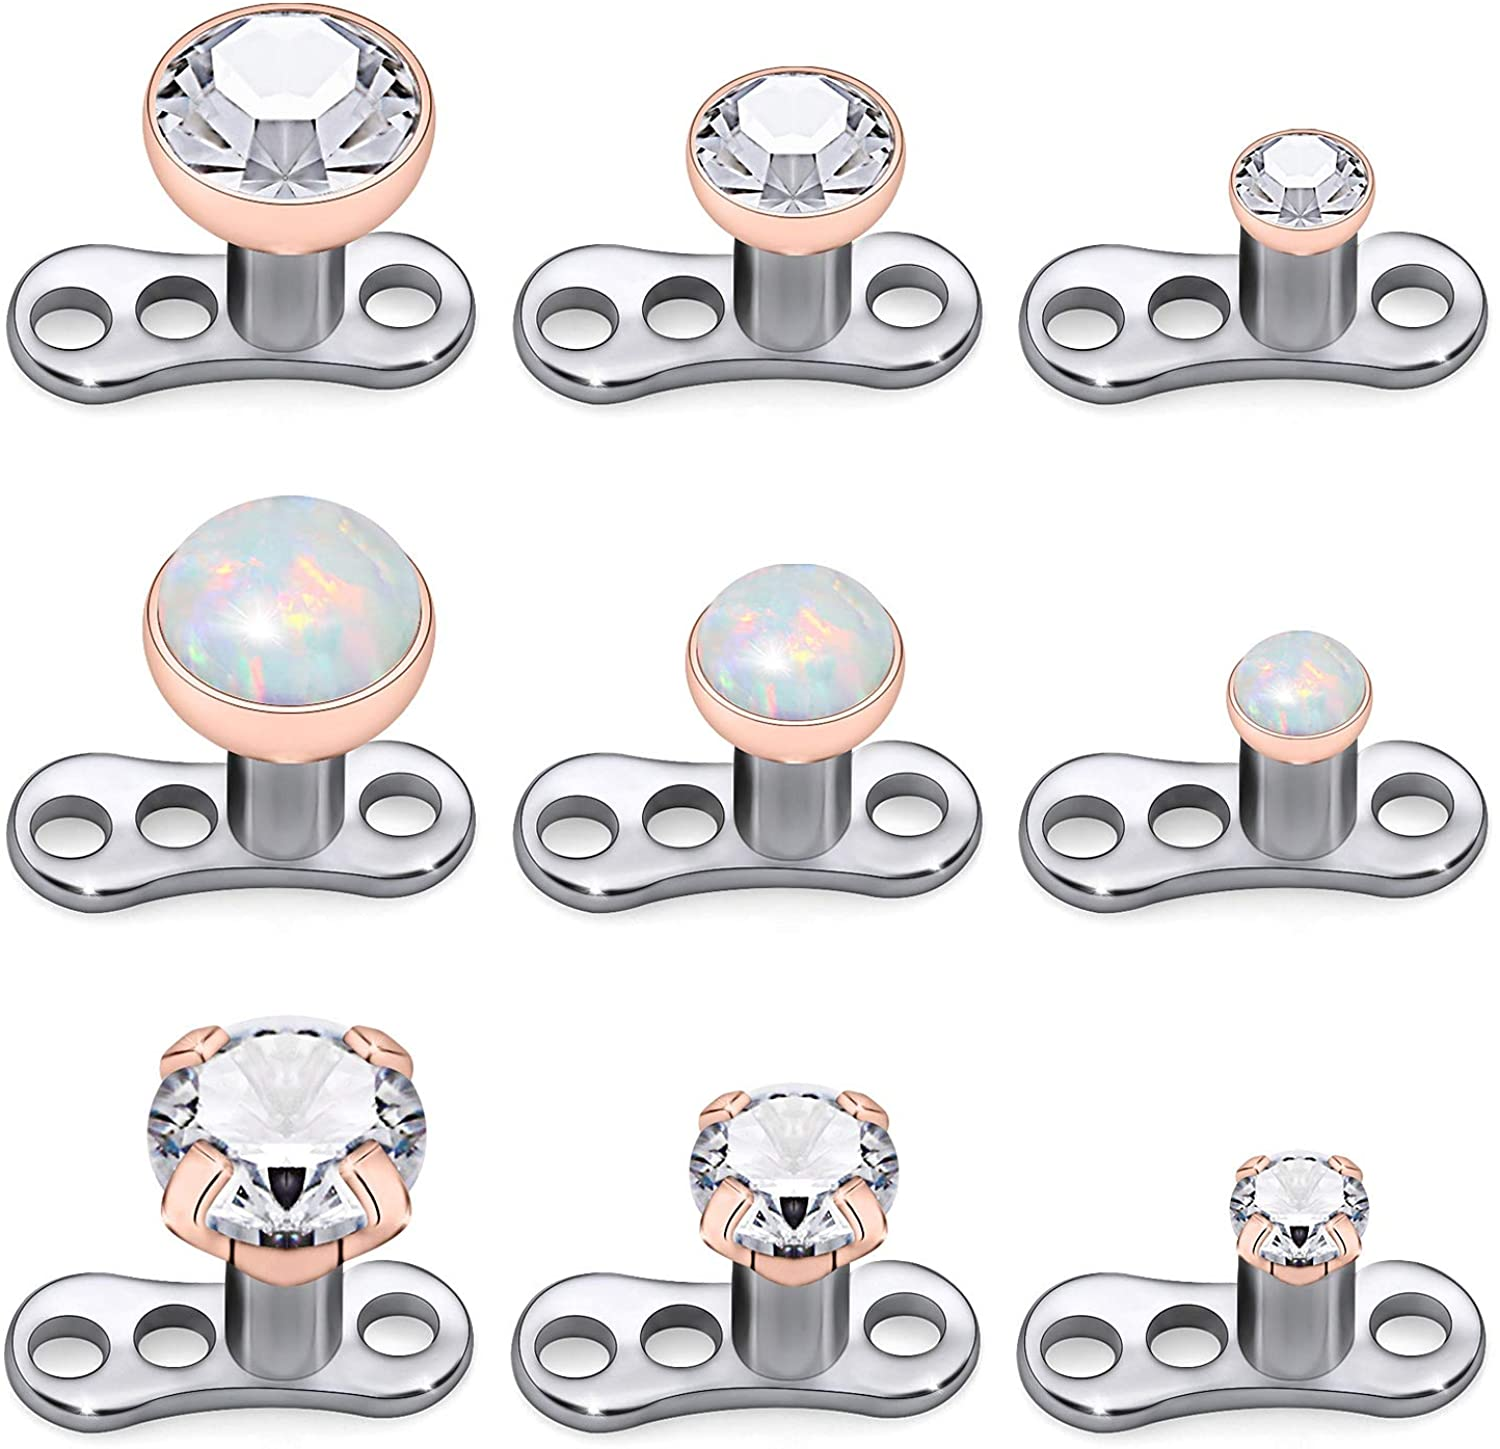 Kridzisw 9pcs Opal Stone Dermal Anchor Tops And Base 316l Surgical Steel Titanium Microdermal Piercing Body Jewelry Top Size 2mm 3mm 4mm Amazon Co Uk Jewellery